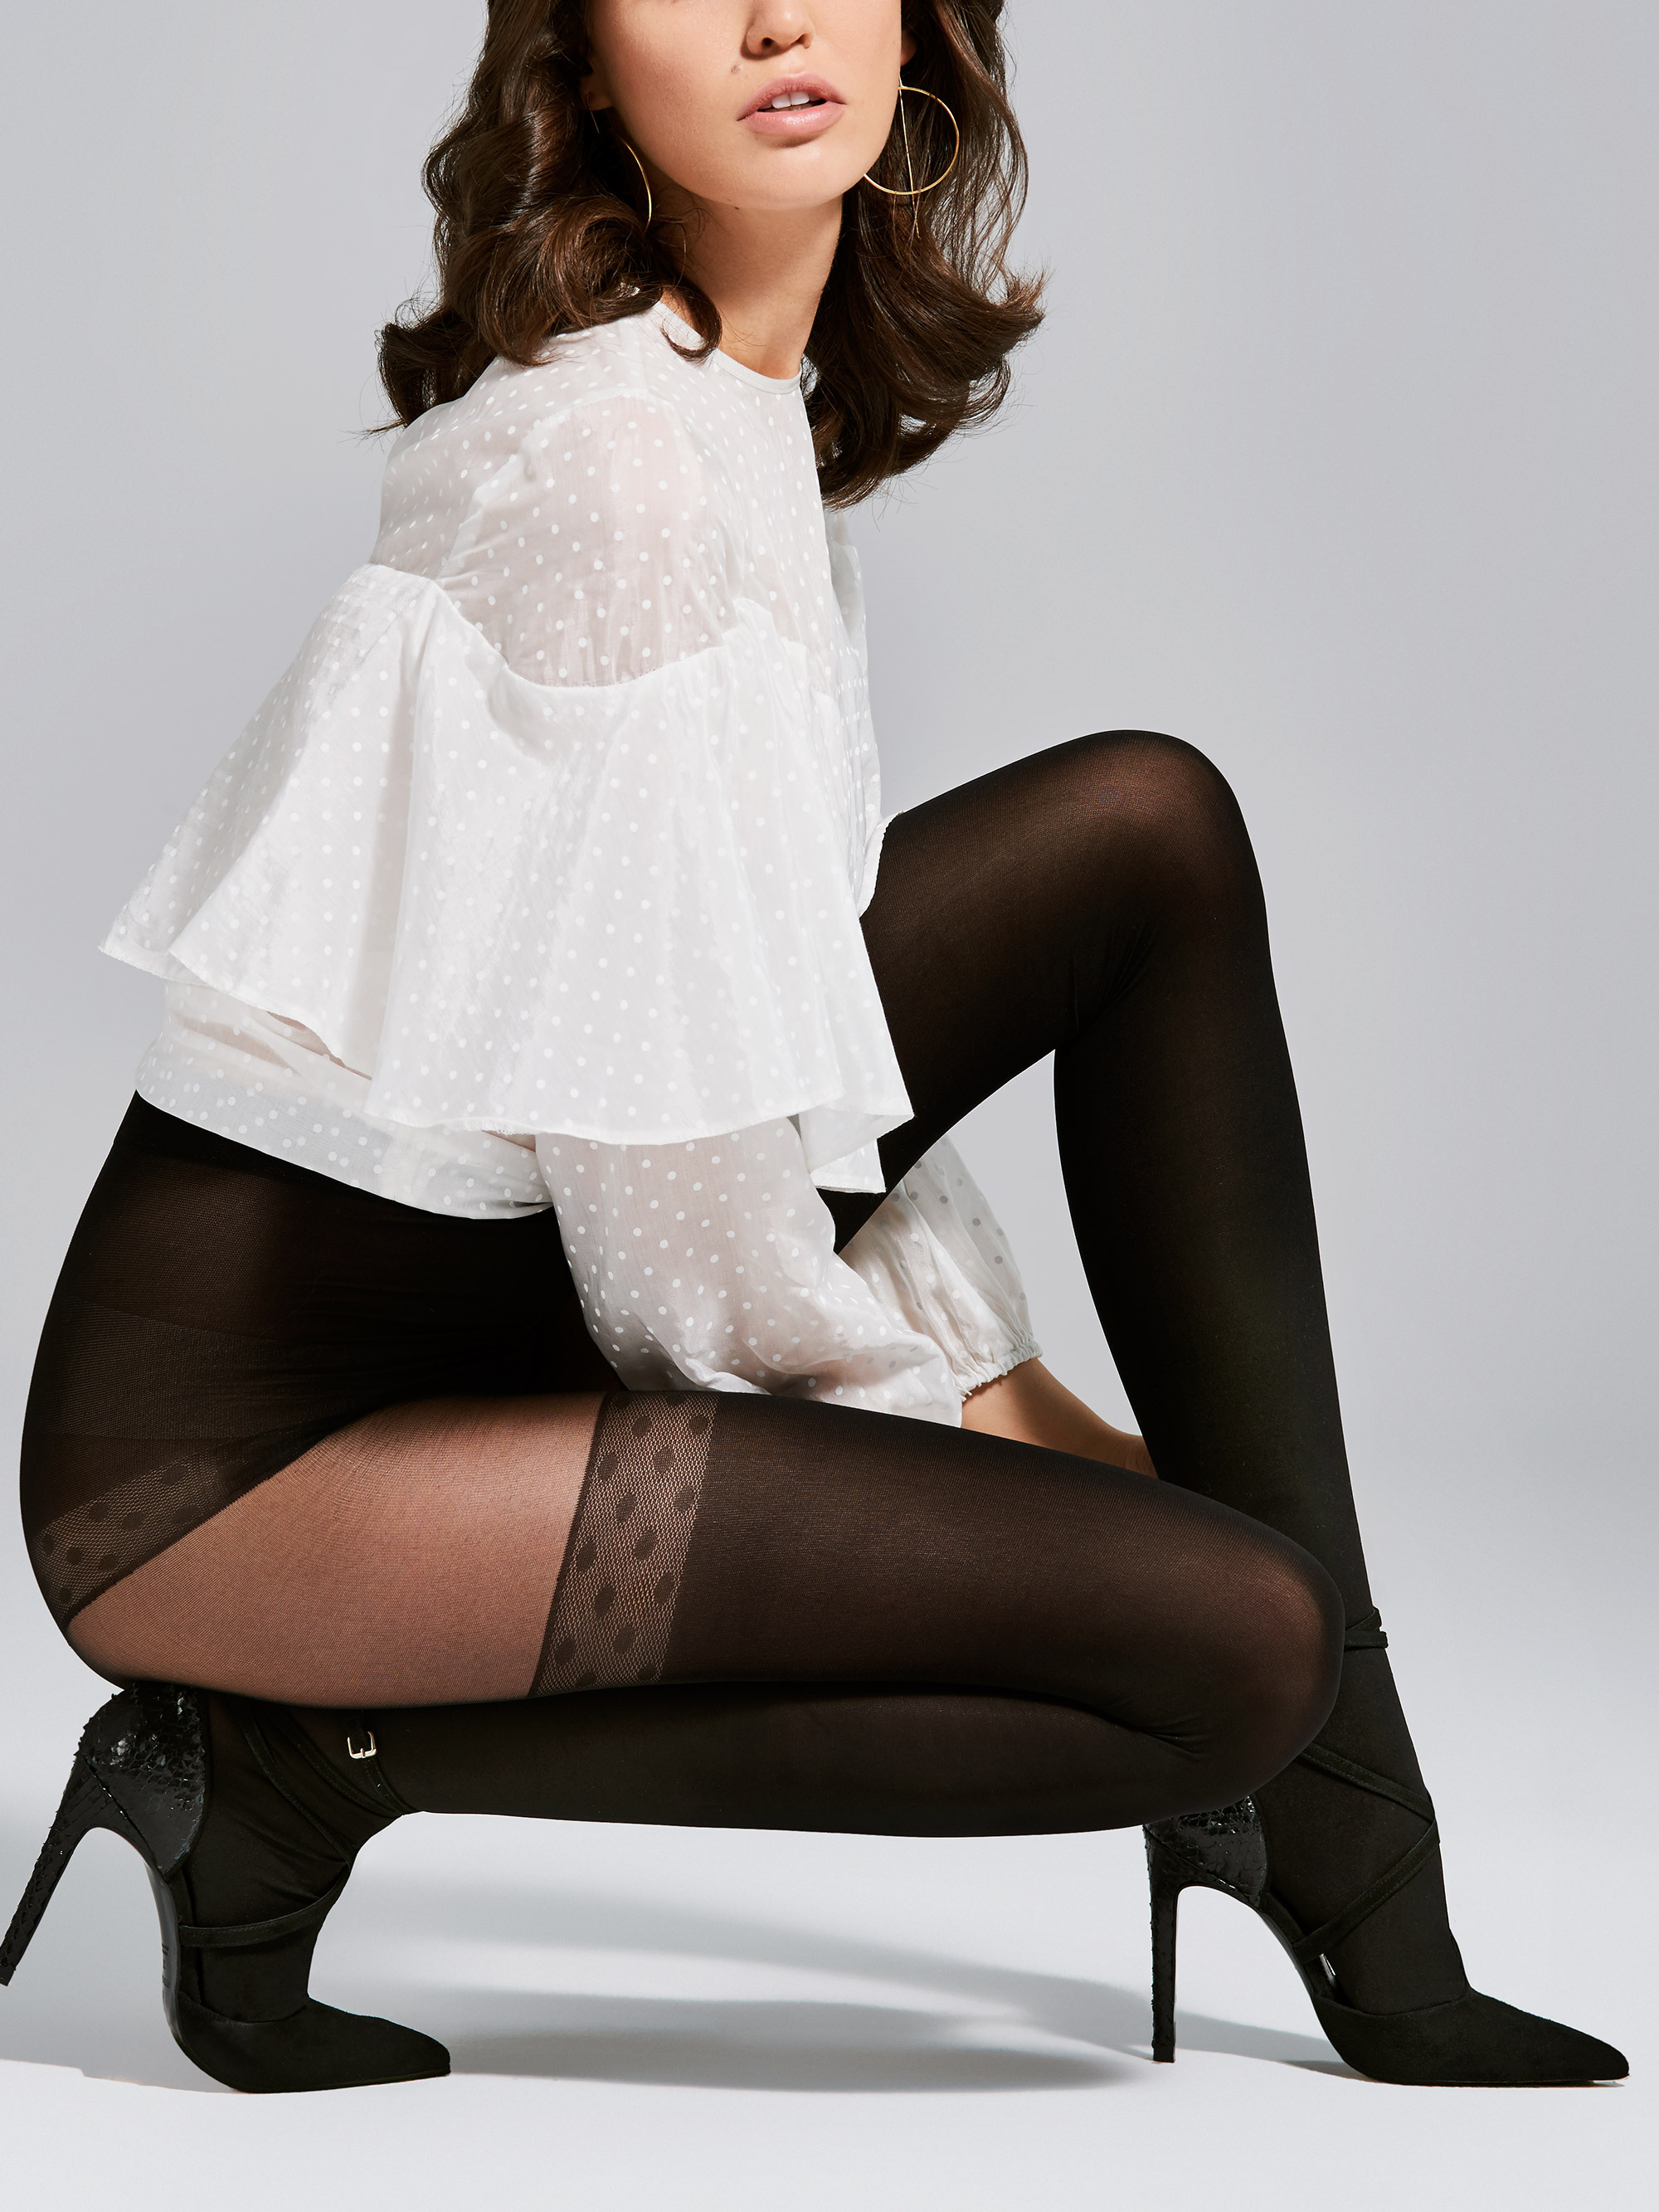 Fiore: Seduction Patterned Opaque Microfibre Tights